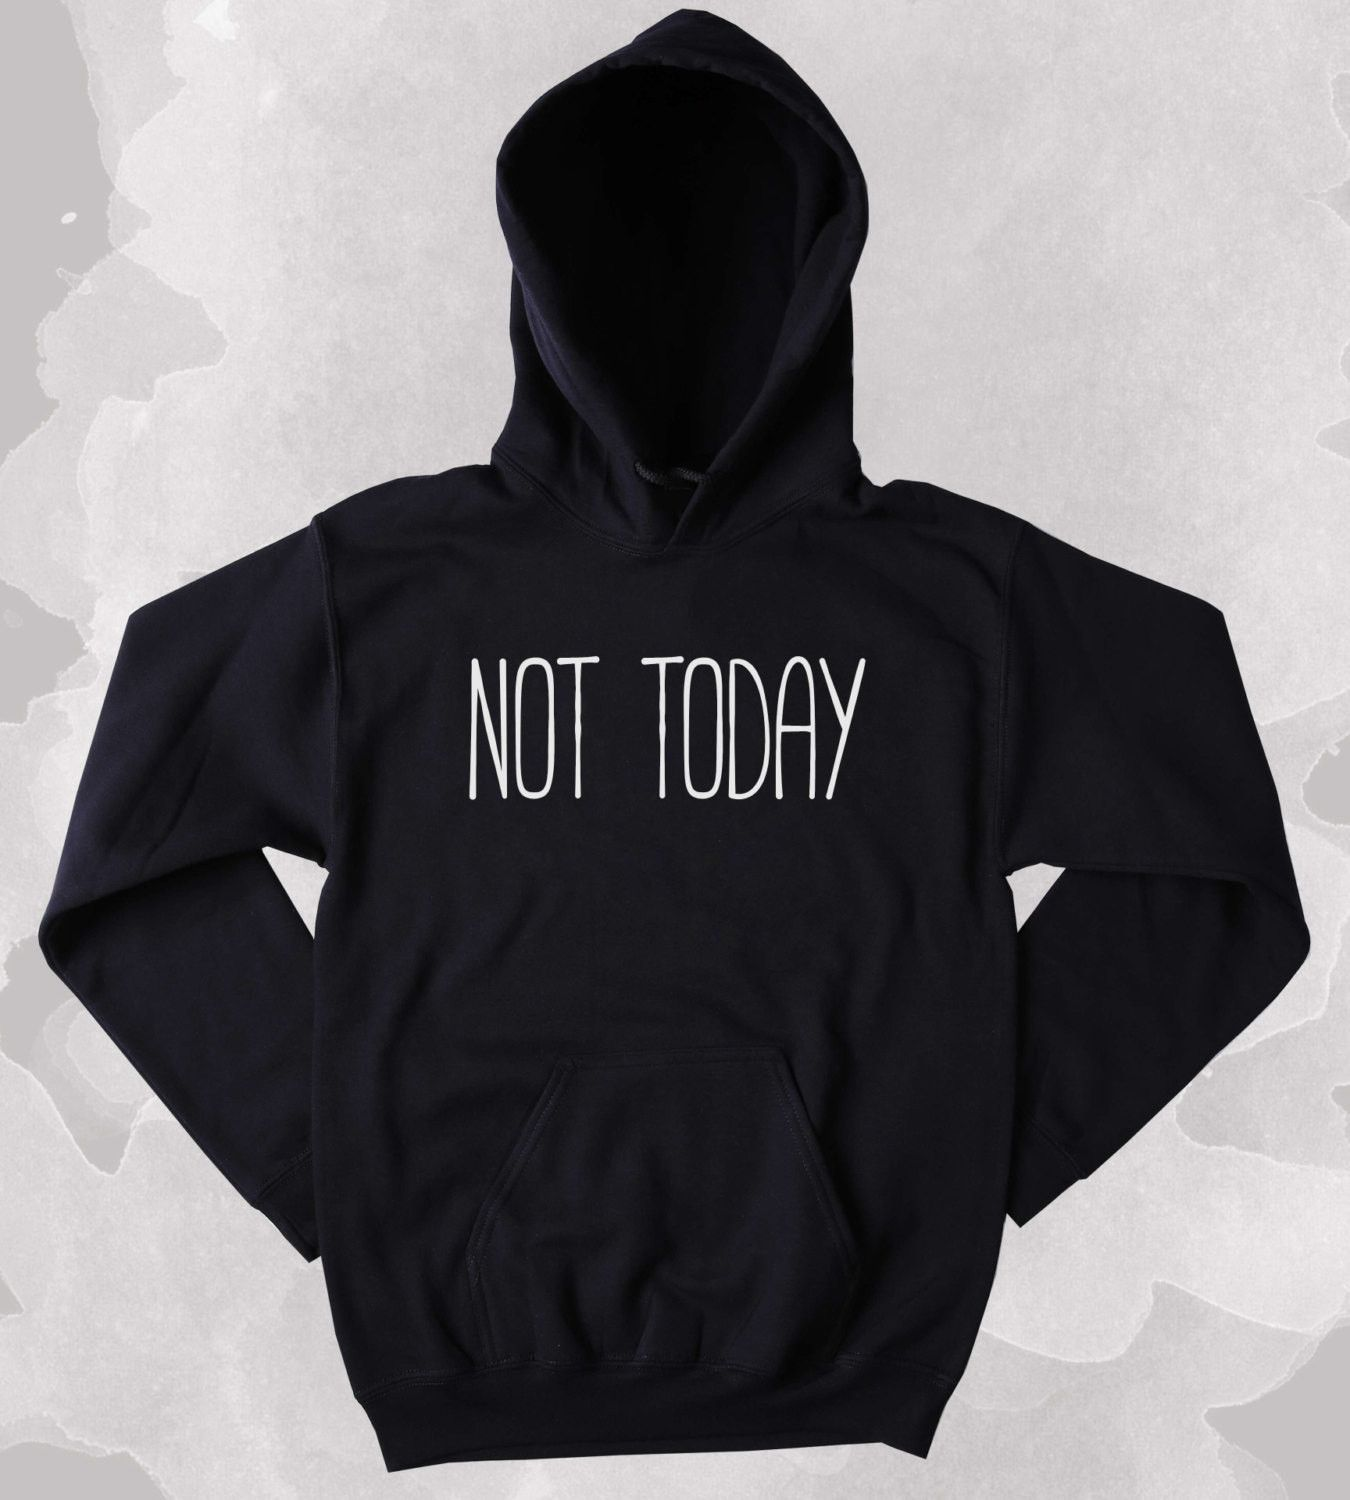 0307236046a0 Not Today Sweatshirt Funny Sarcastic Clothing Anti Social Sarcasm Tumblr  Hoodie SIZE GUIDE UNI-SEX HOODIES  Across Chest from Armpit to Armpit -  Length from ...